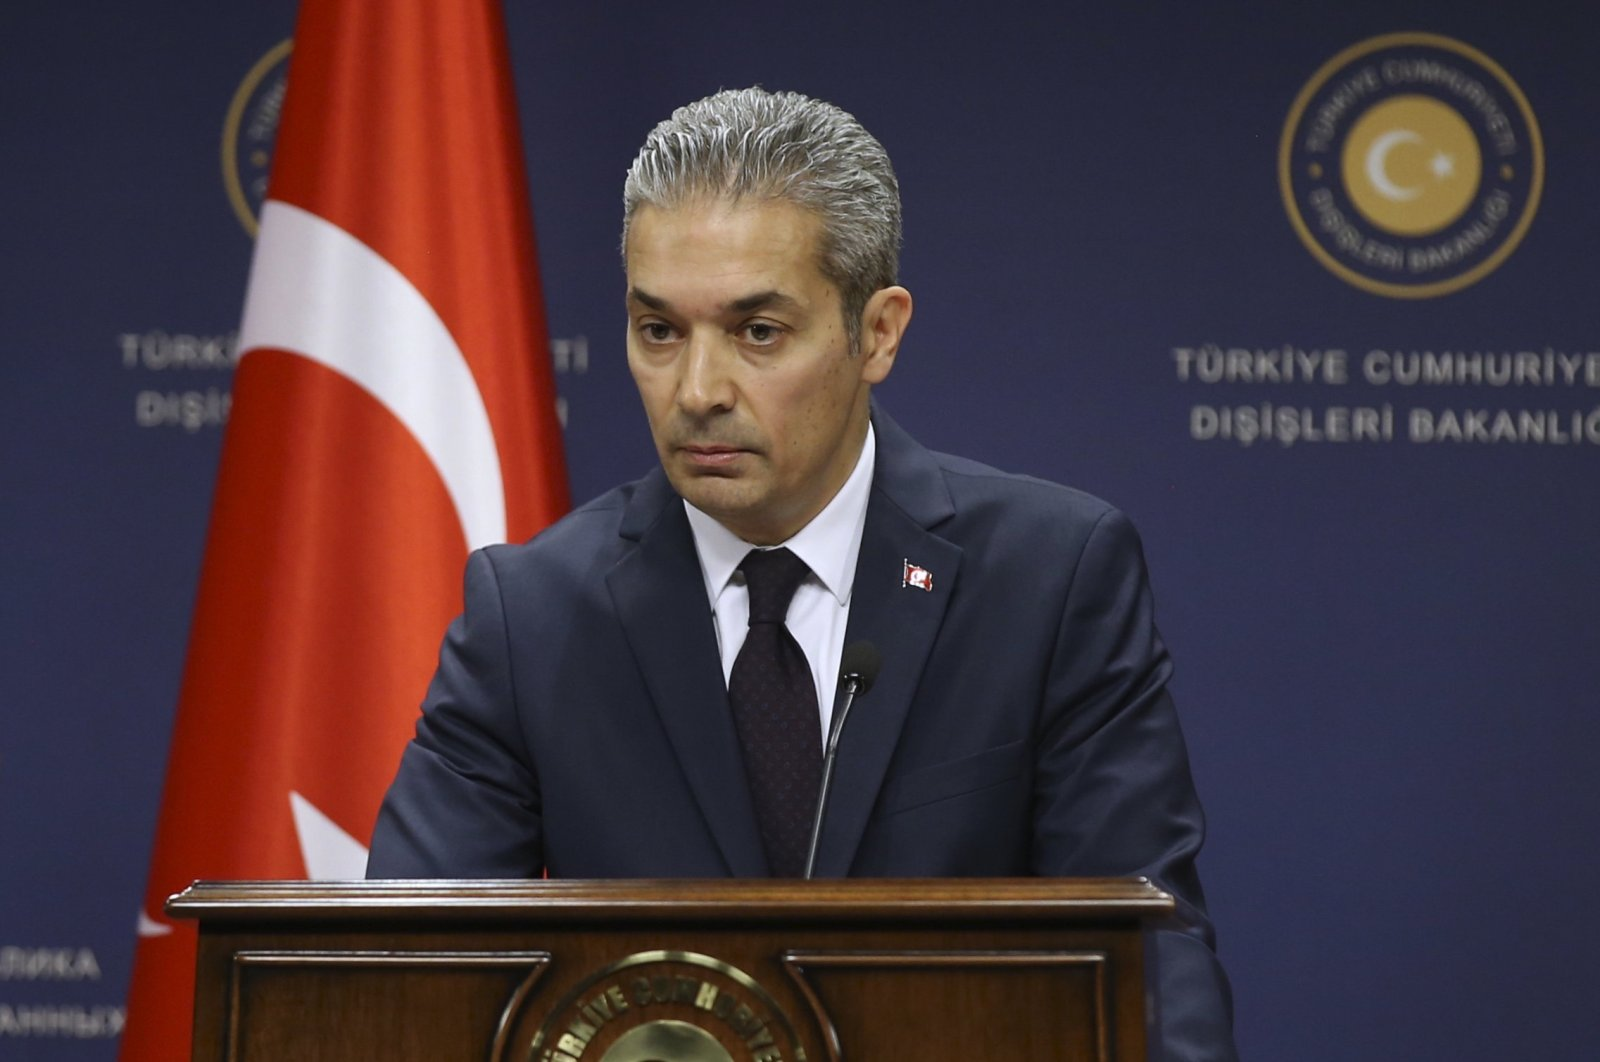 Foreign Ministry spokesman Hami Aksoy speaks during a briefing in Ankara, Turkey, May 3, 2019. (AA Photo)